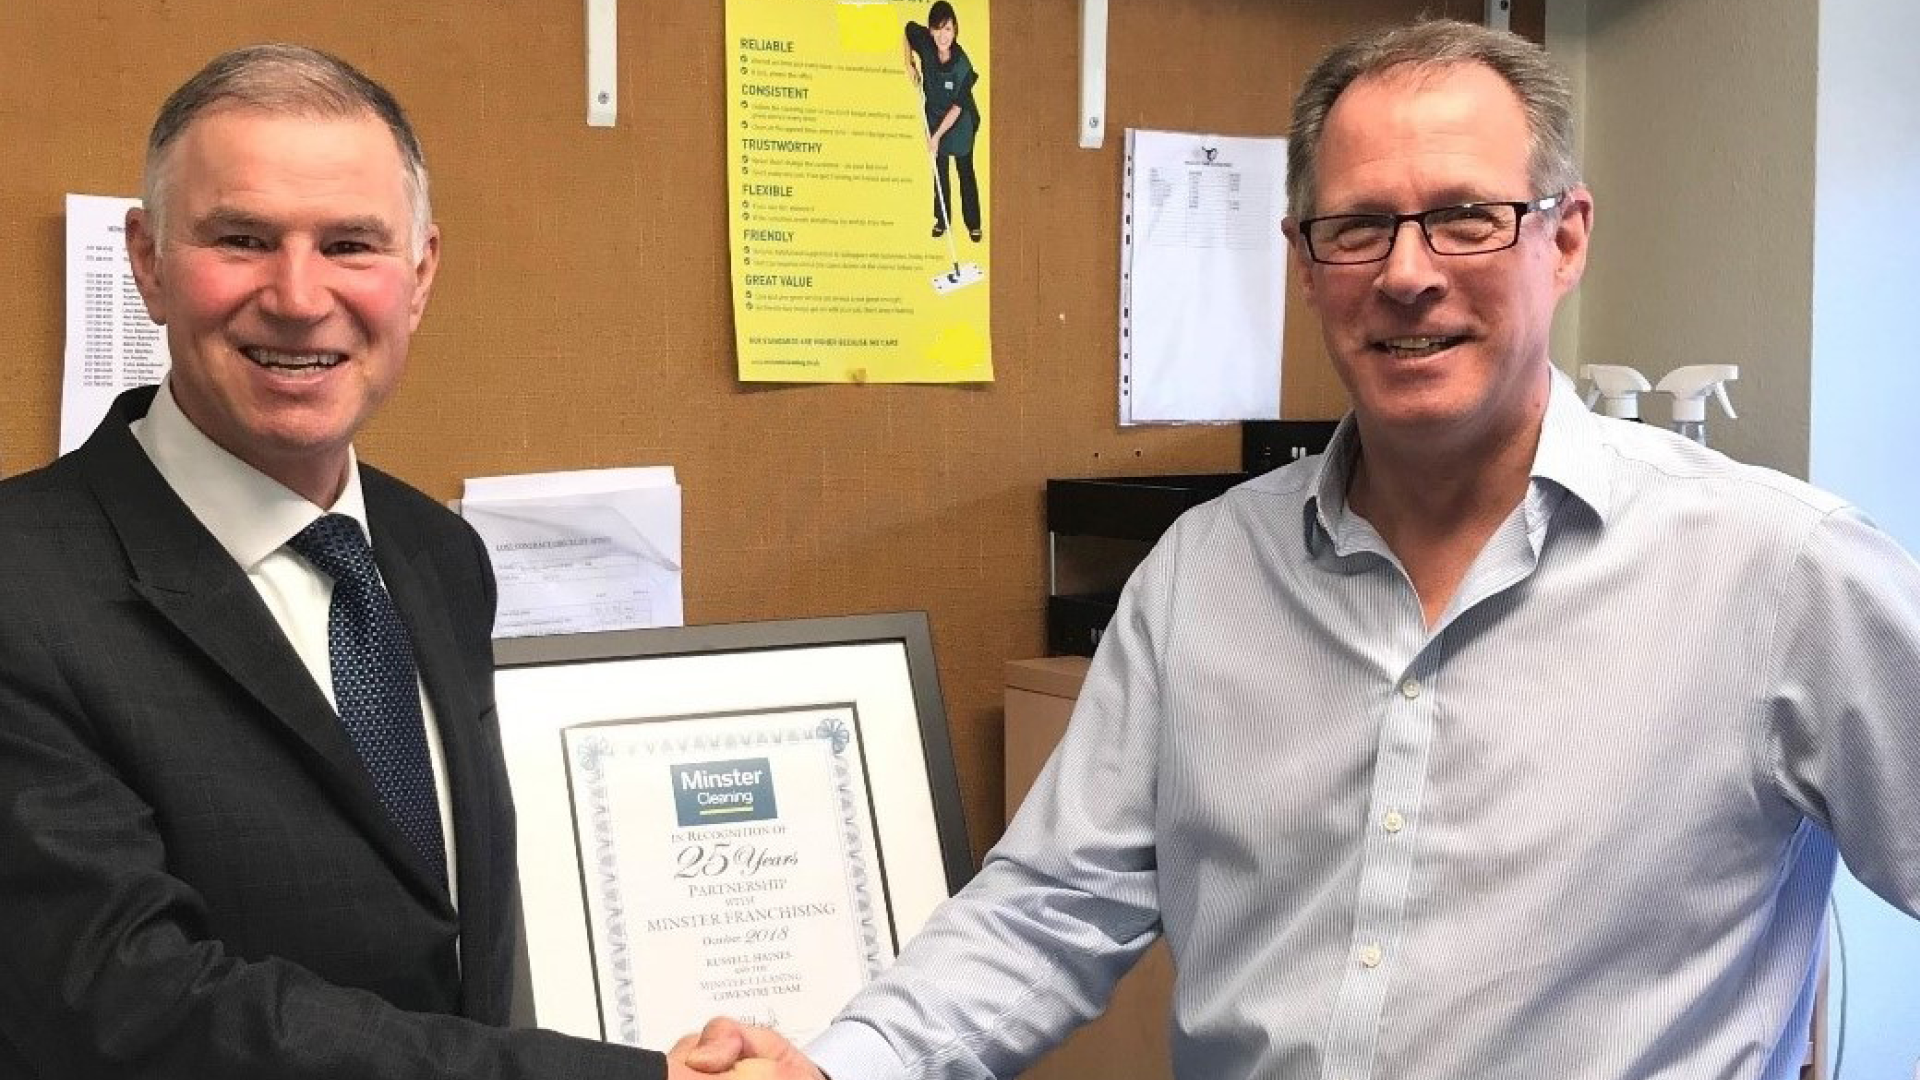 Coventry branch celebrates 25 years with Minster Cleaning